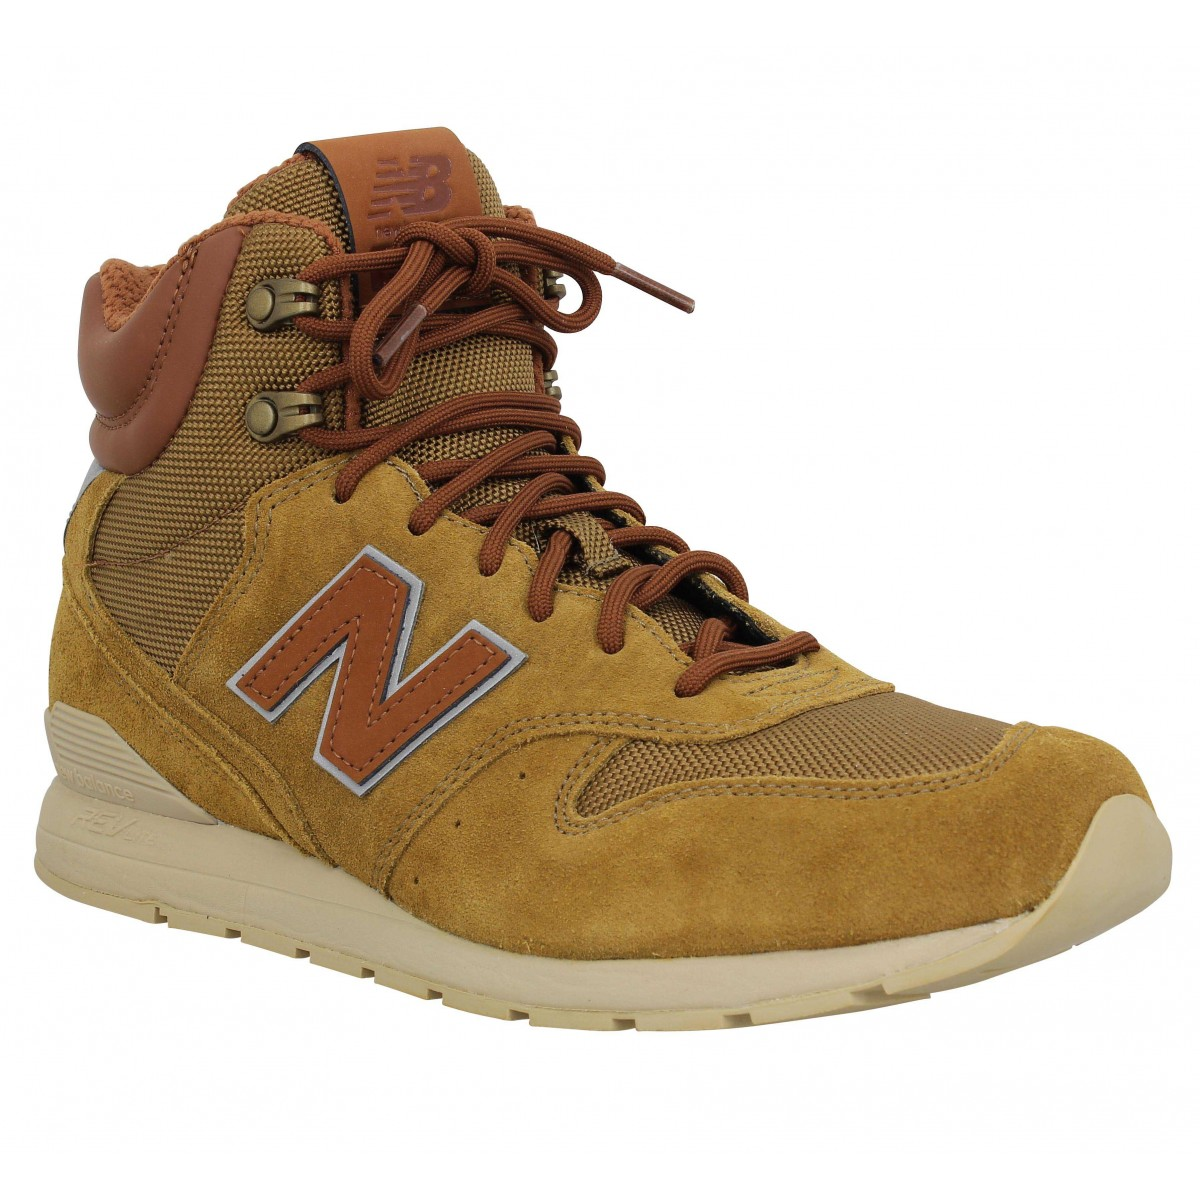 Baskets NEW BALANCE 996 Winter velours toile Homme Camel